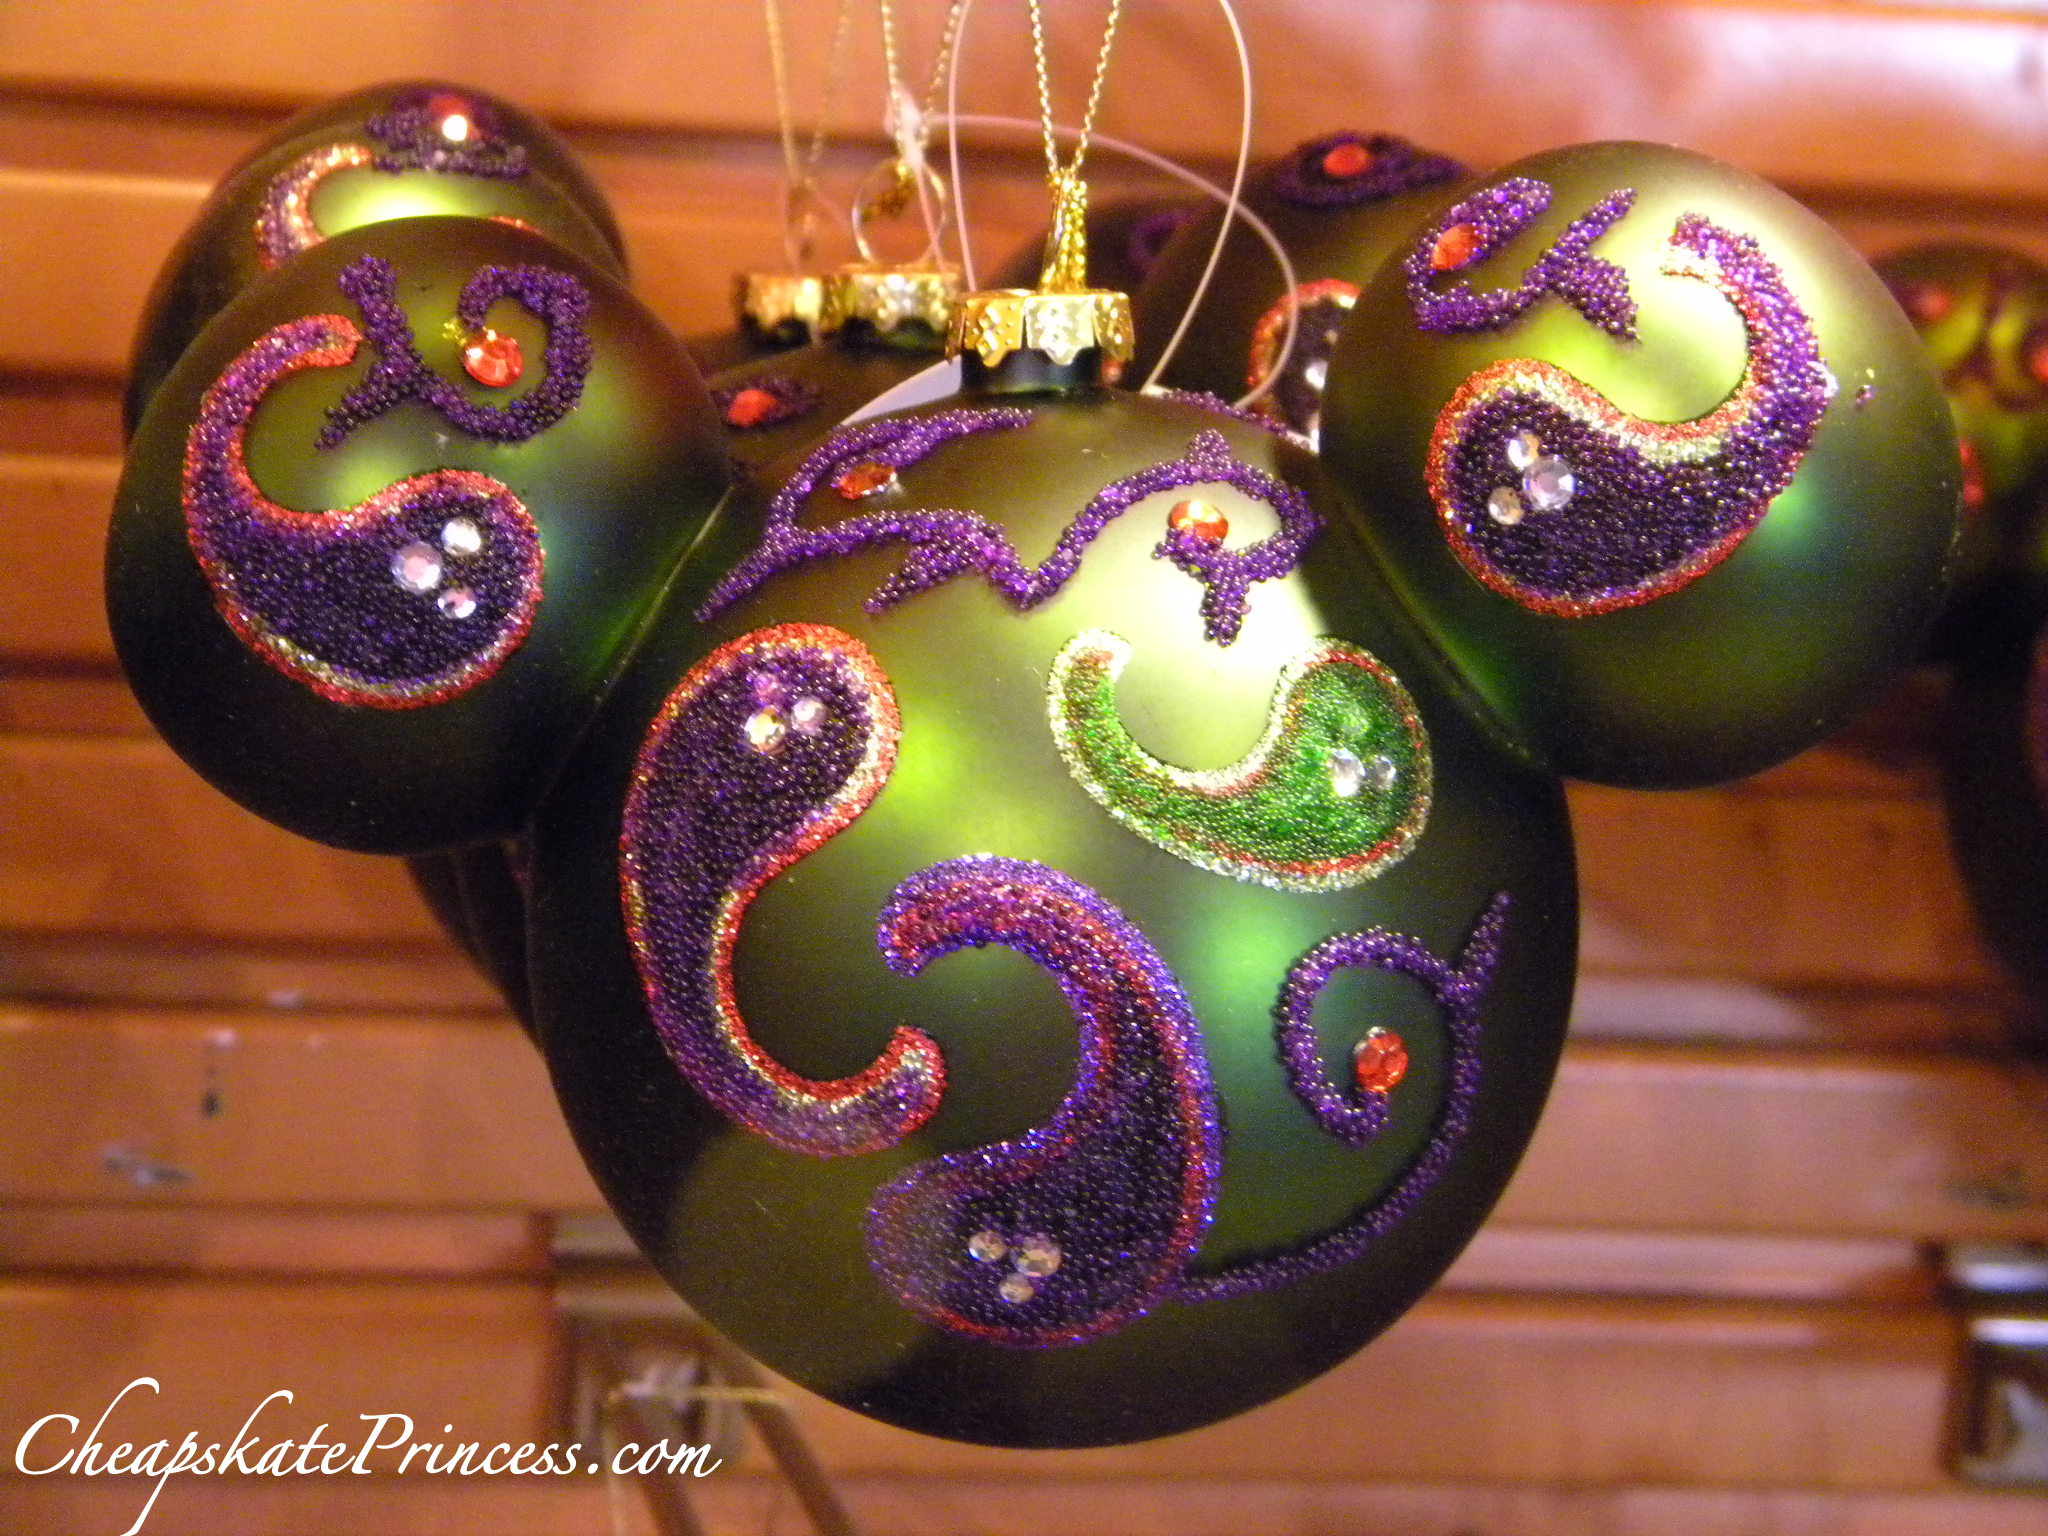 Christmas At Disney World Would You Spend Up To 30 For A Christmas Ornament Disney S Cheapskate Princess